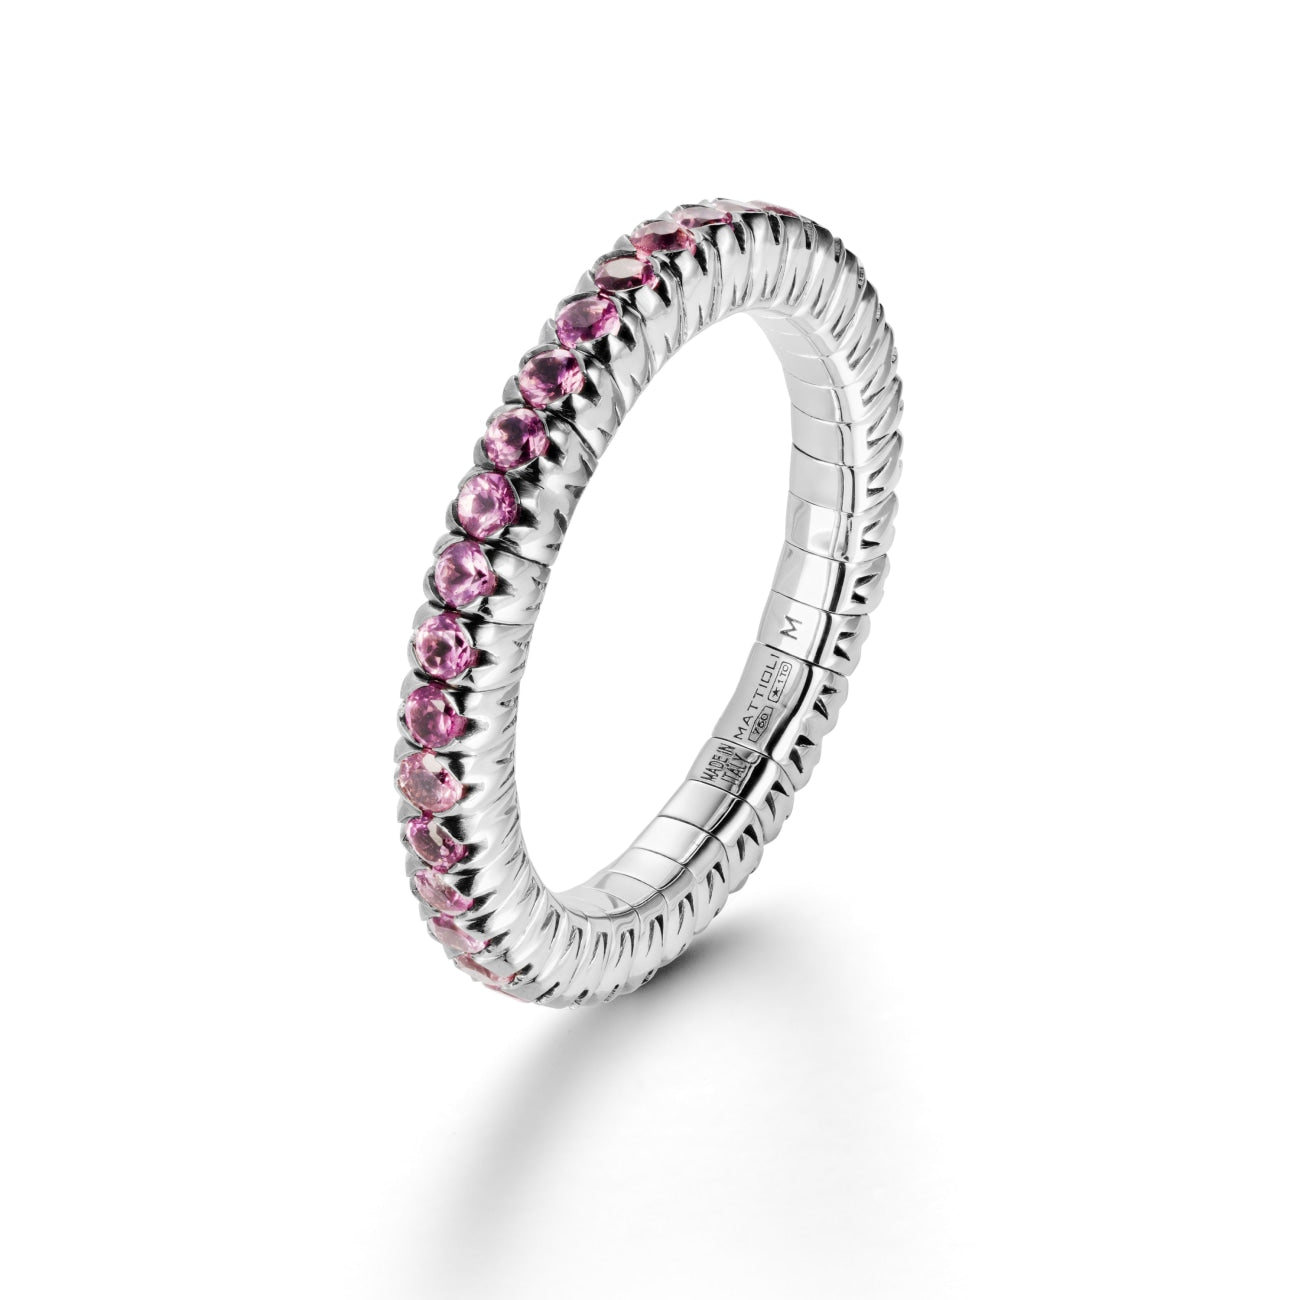 Mattioli Jewelry - Xband Expandable Ring in 18kt White Gold and Pink Sapphire | Manfredi Jewels